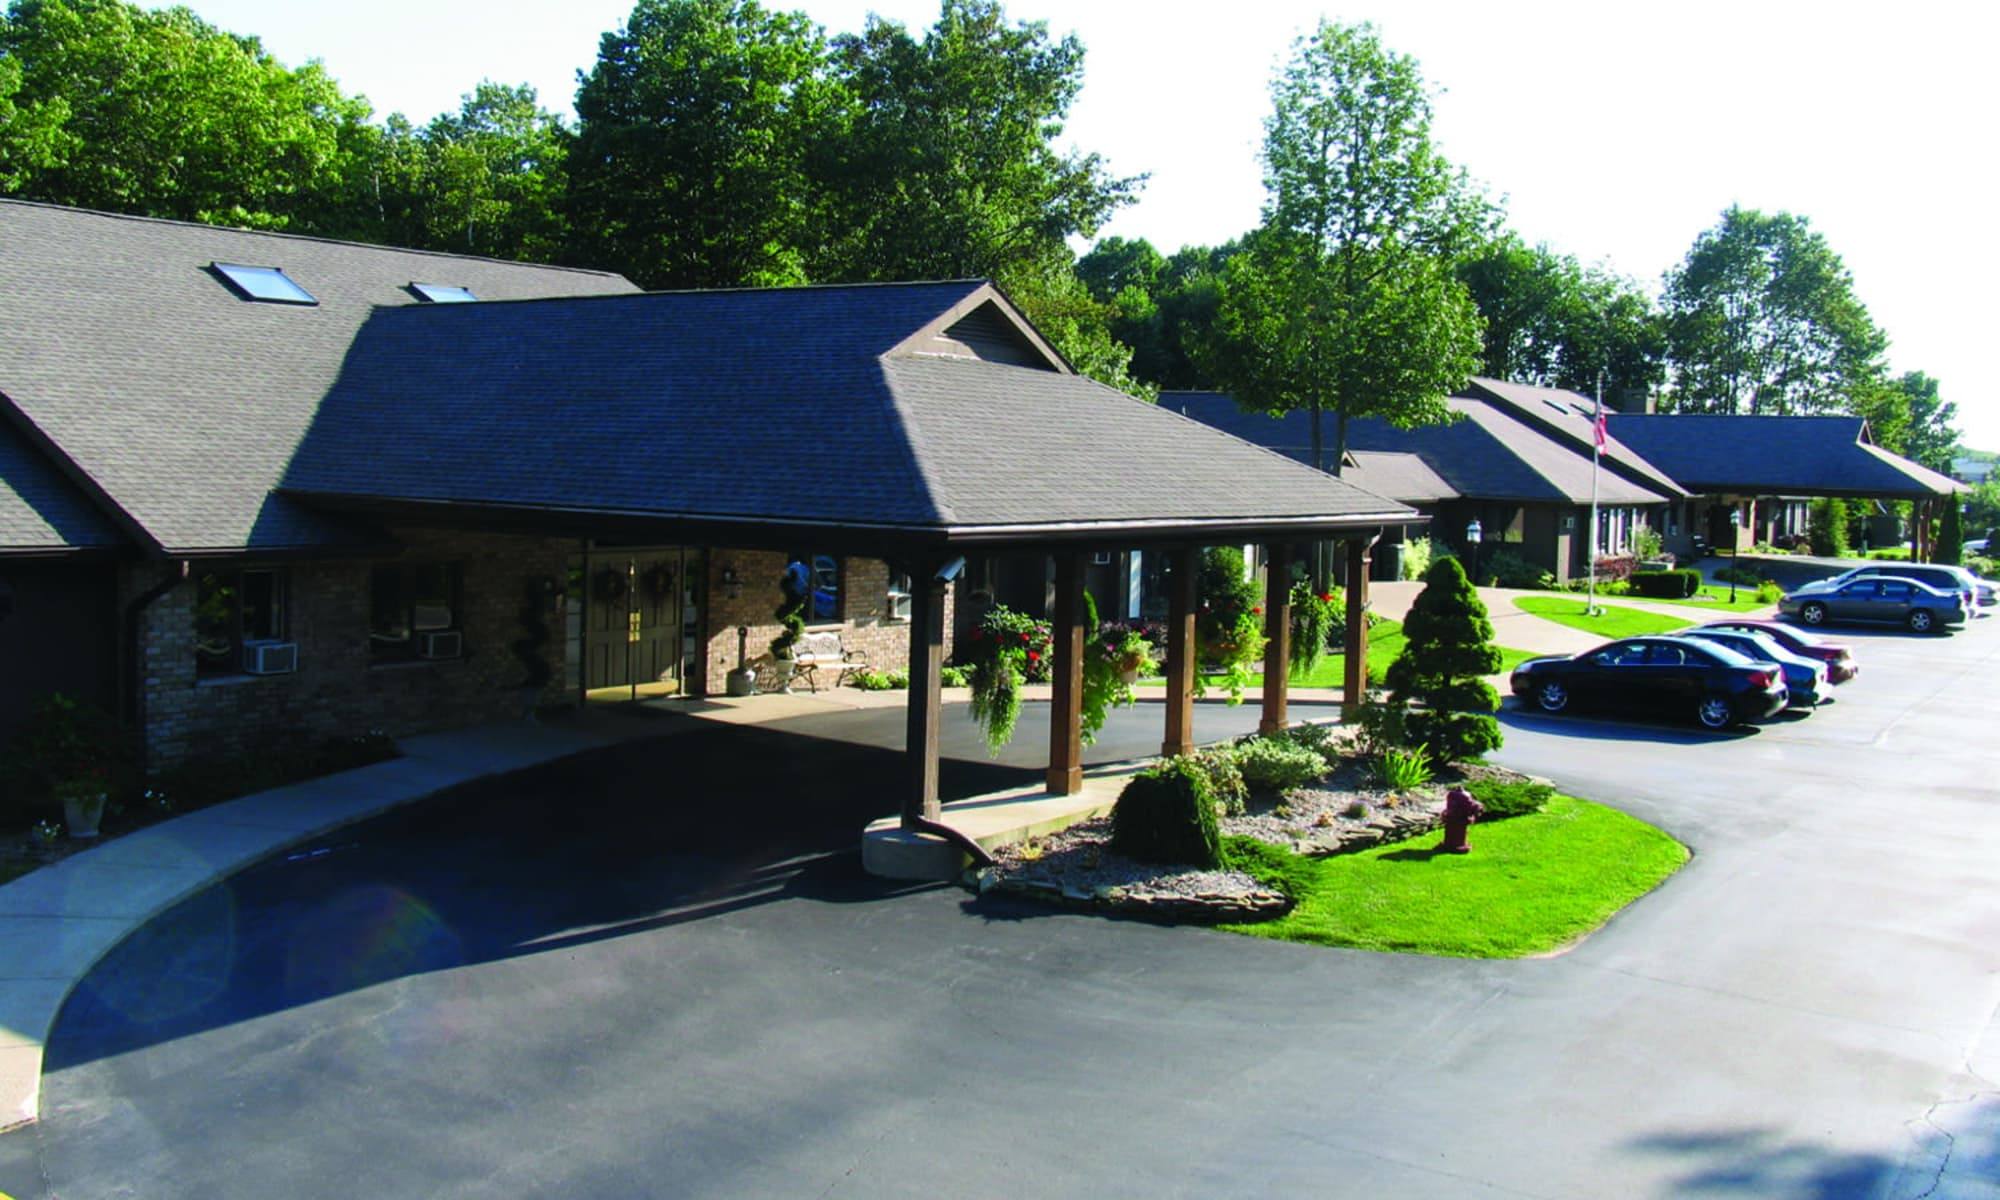 Premier assisted living care at Lakeshore Woods, A Randall Residence, in Fort Gratiot, MI